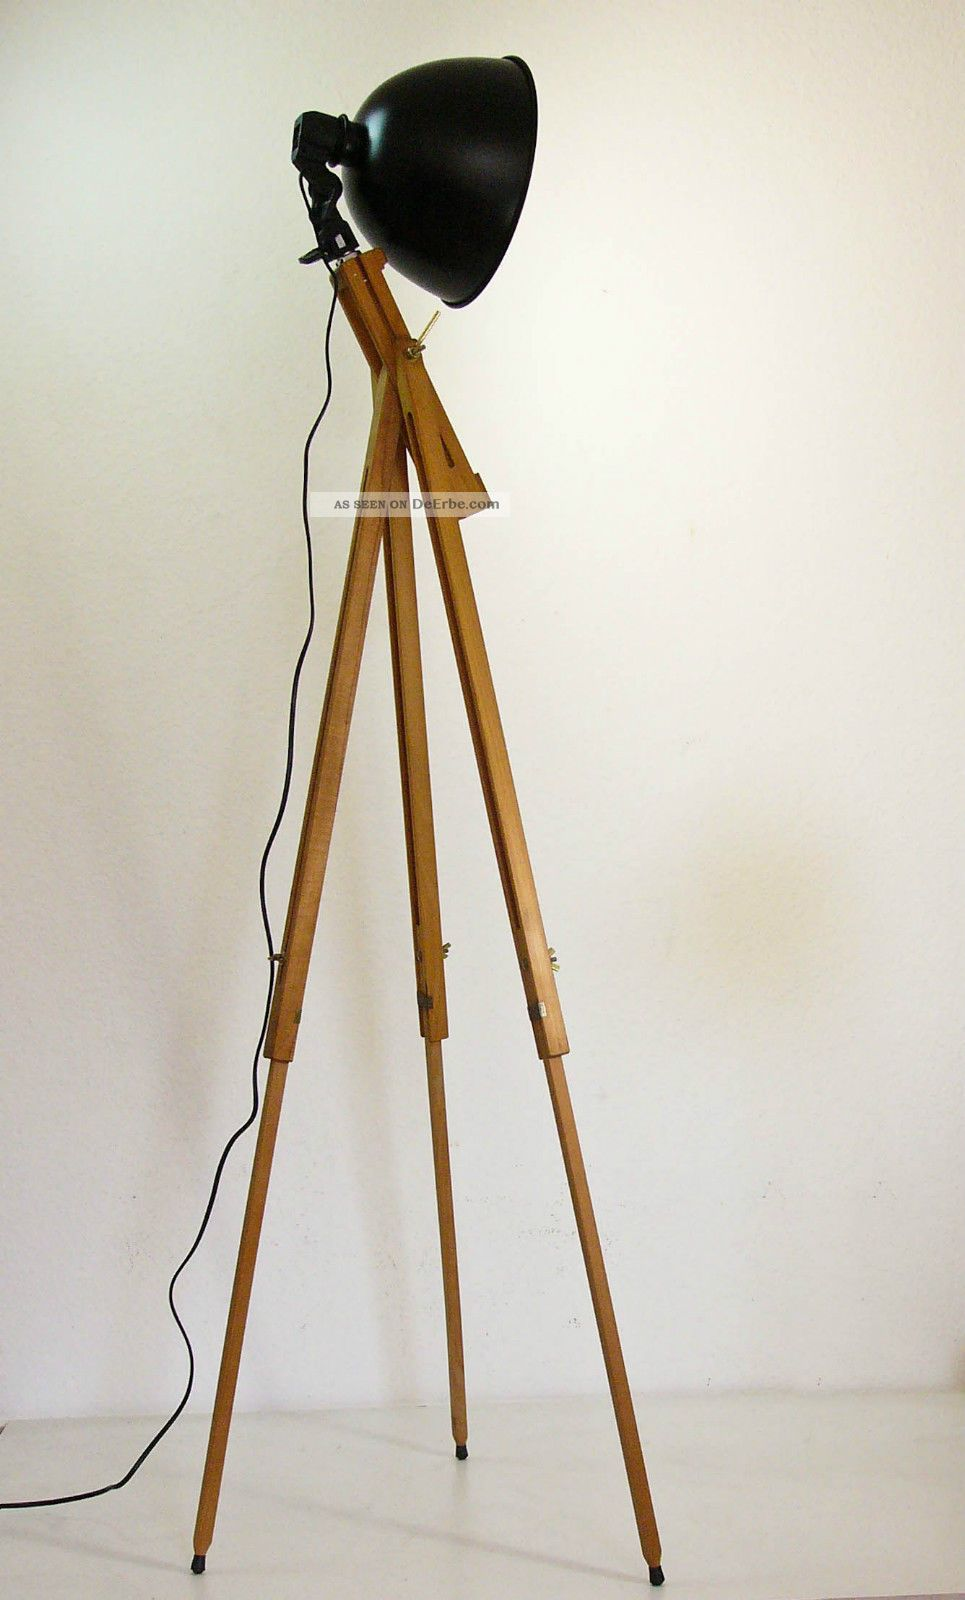 tripod stehlampe scheinwerfer stehleuchte dreibein holz stativ lampe retro 60er. Black Bedroom Furniture Sets. Home Design Ideas